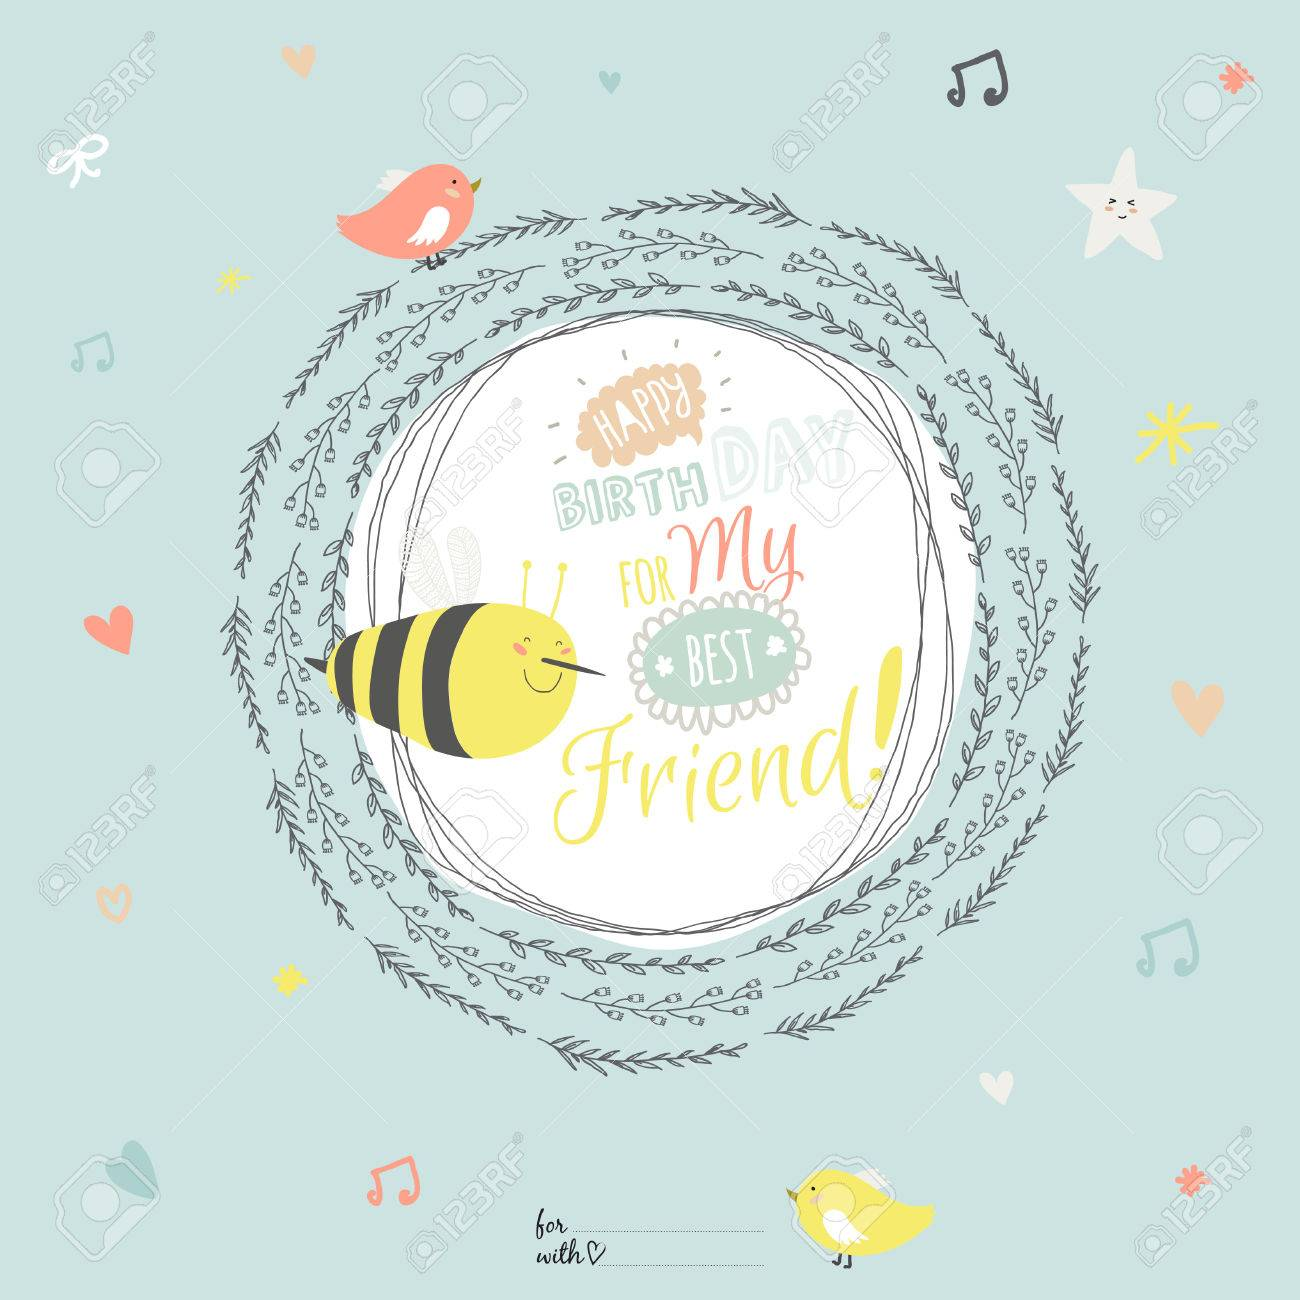 Romantic And Love Happy Birthday Card With Greeting Wish To Best Friend Cute Bee In